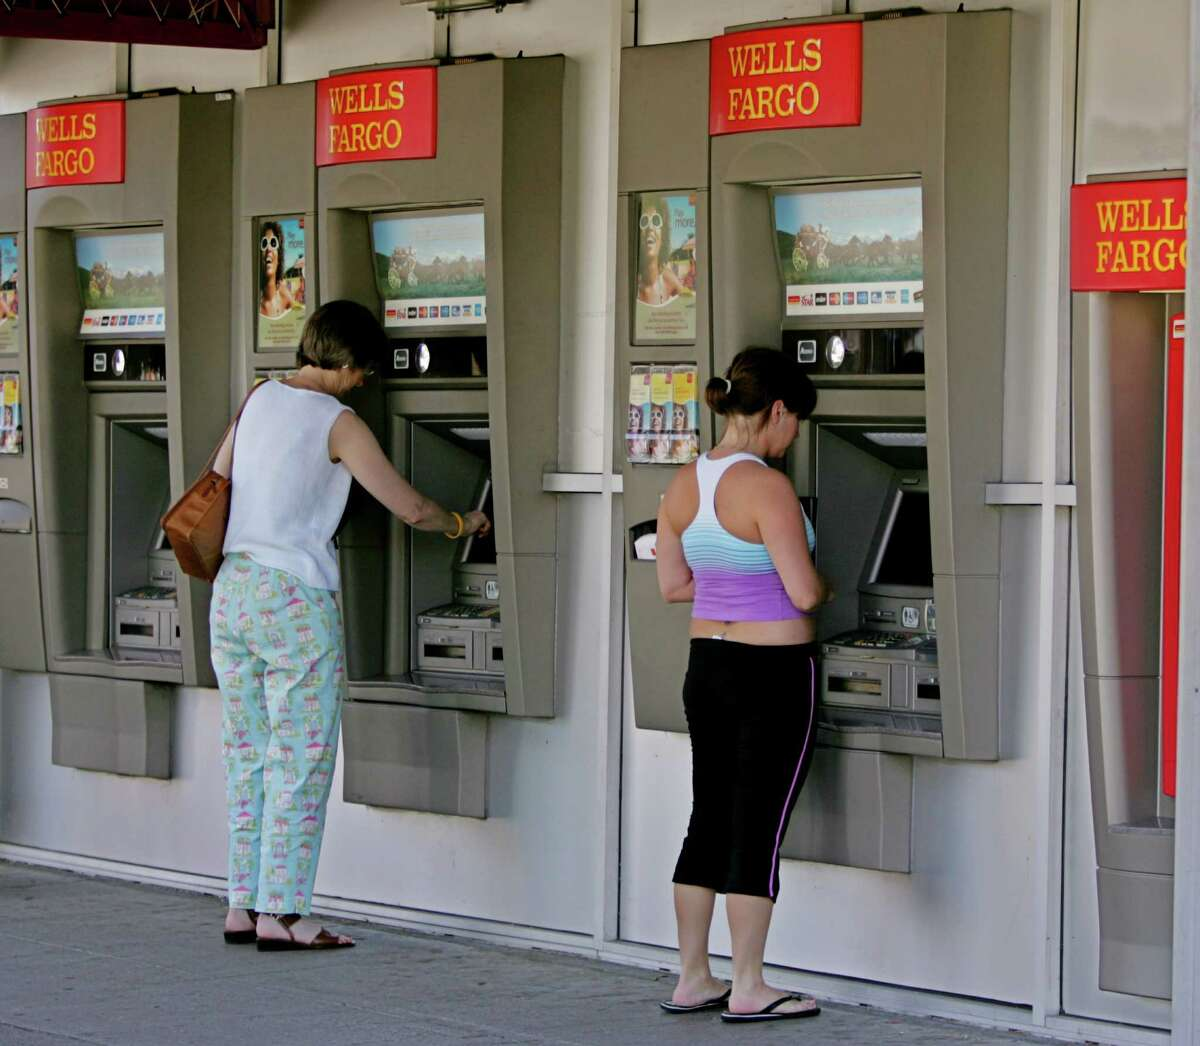 3. Don't use an ATM at Fiesta Texas unless you want to be charged more Several mommy blogs and financial websites encourage taking money out before going to the park because of expensive fees that come with ATM transactions.